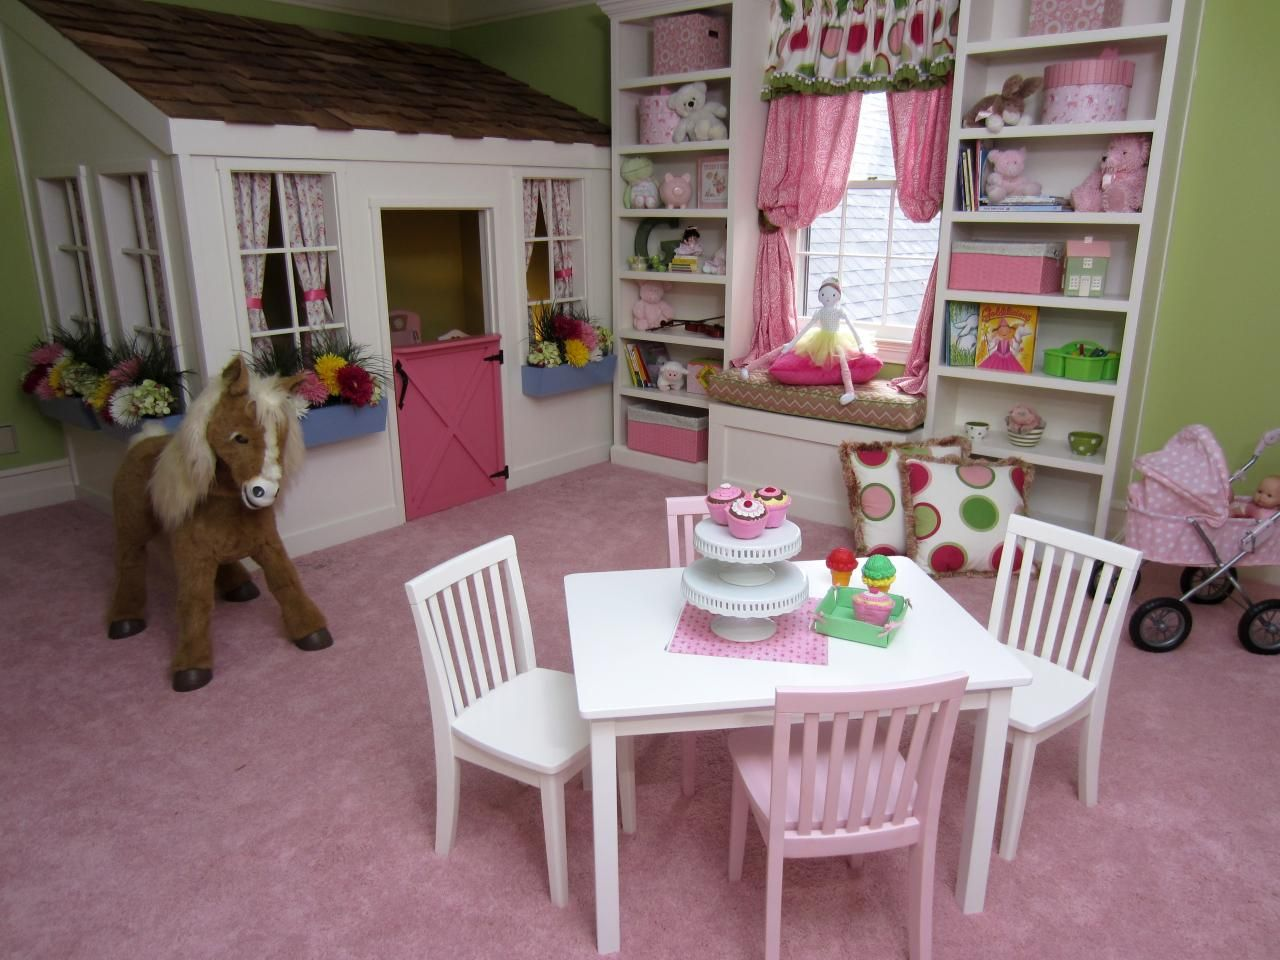 Decorating Ideas for Fun Playrooms and Kids' Bedrooms   Playrooms ...